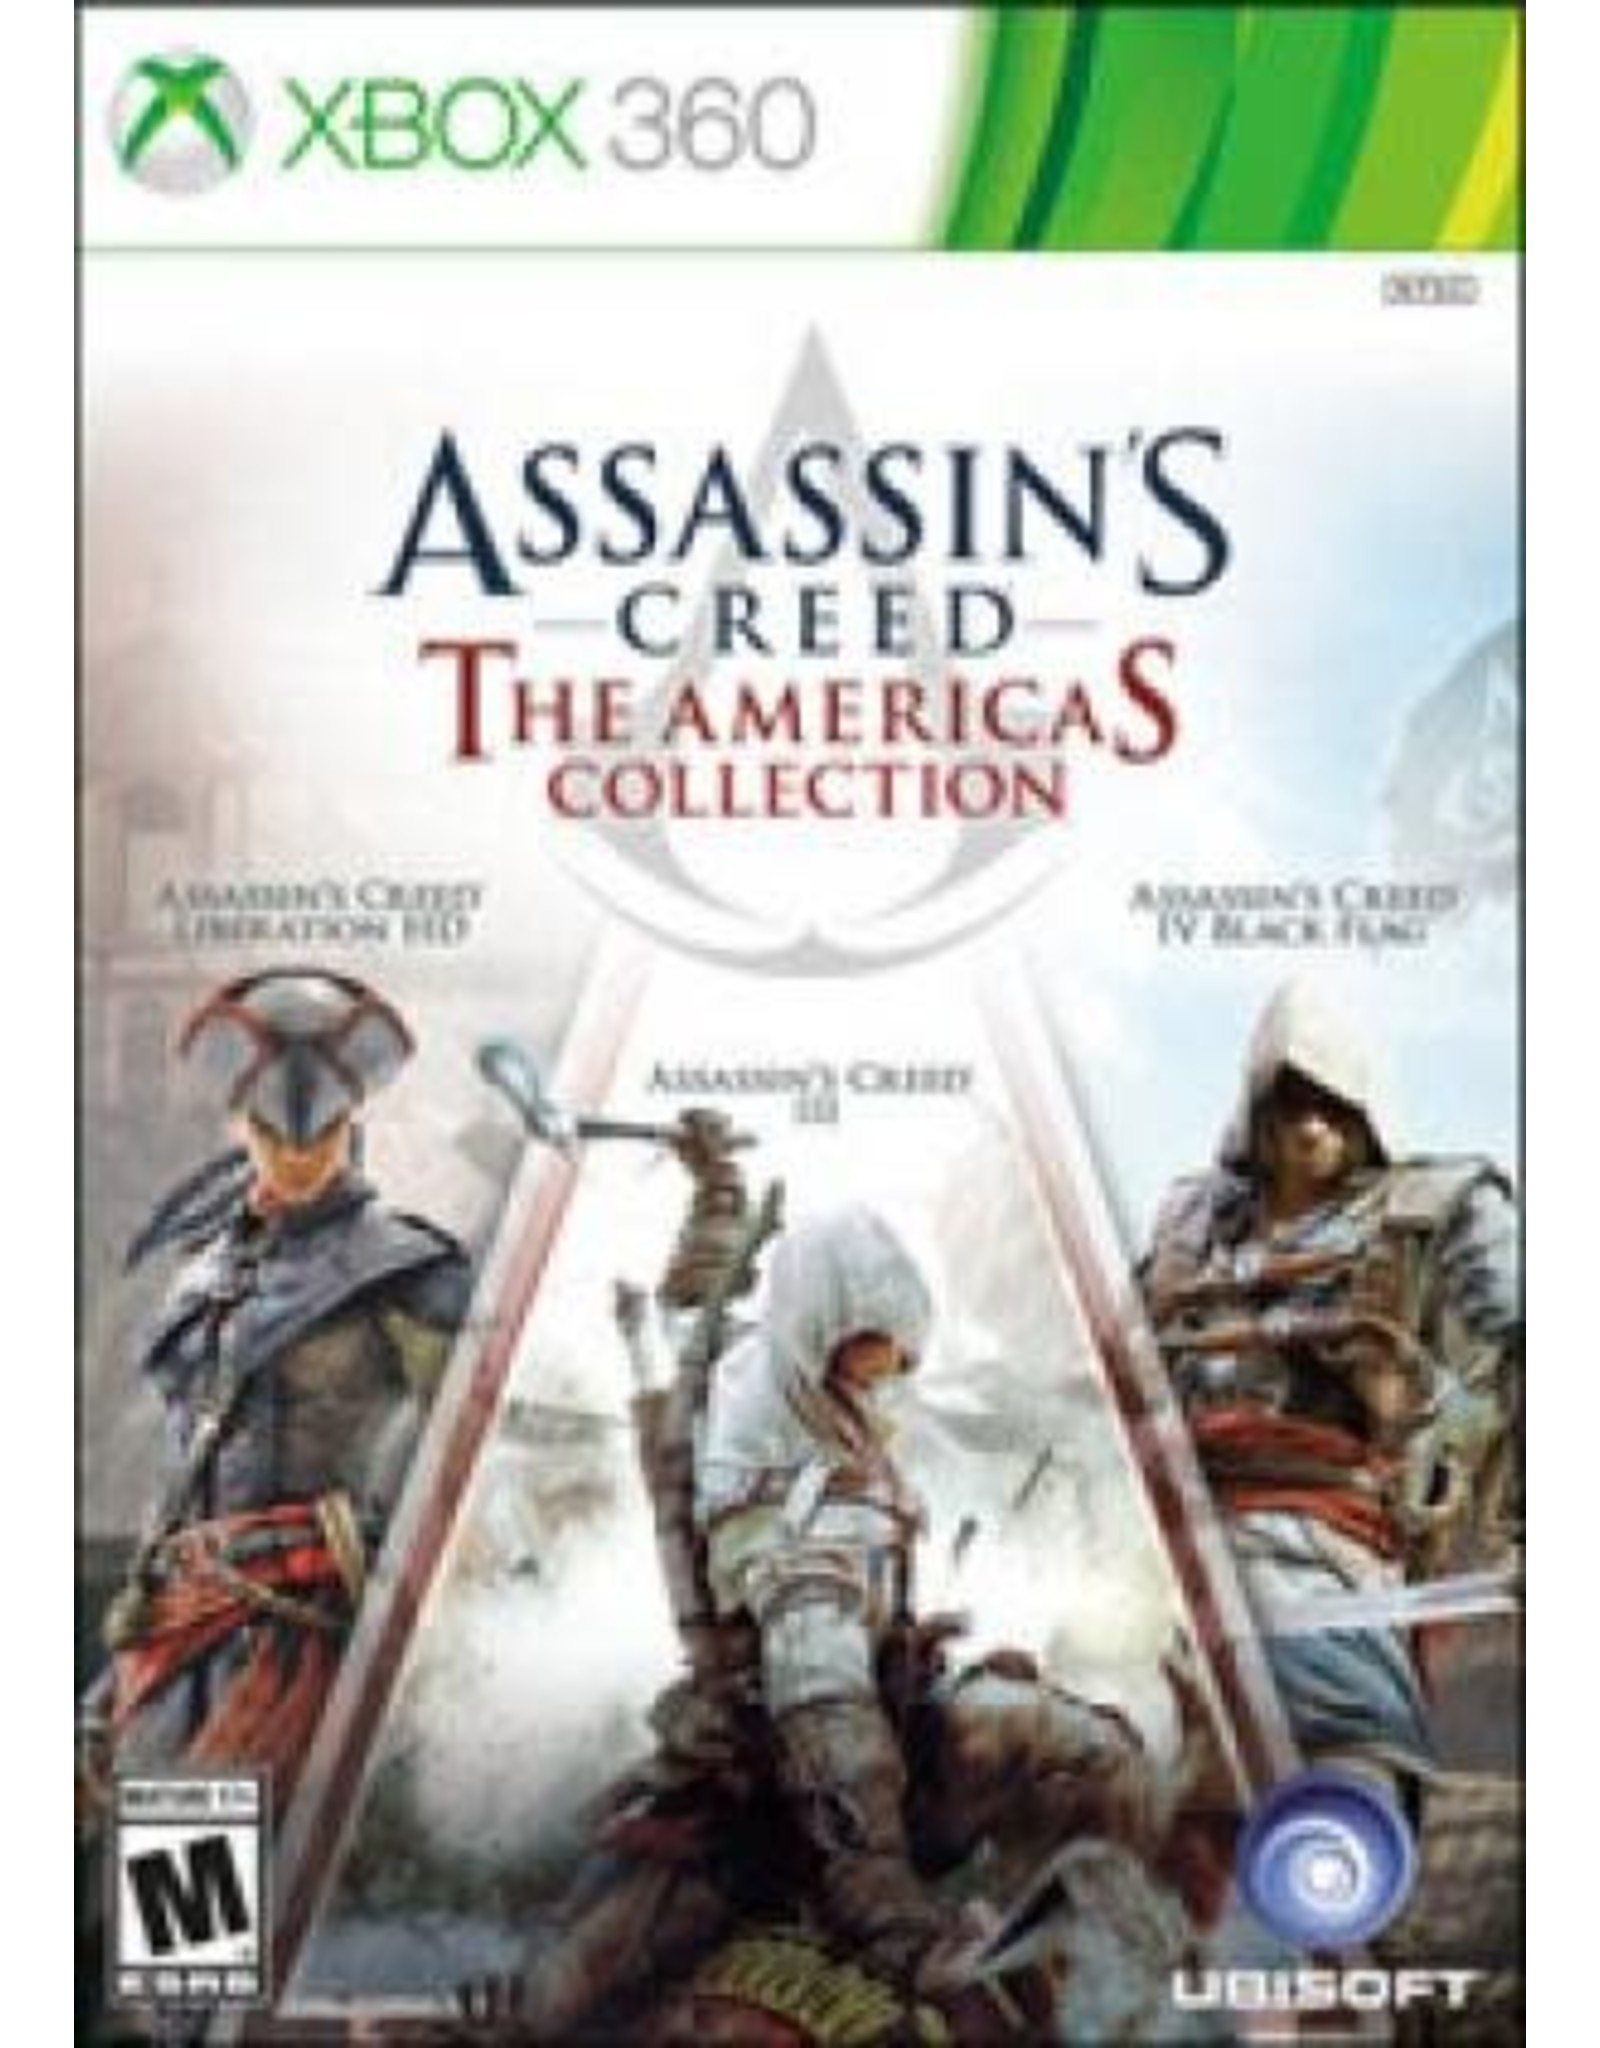 Xbox 360 Assassin's Creed: The Americas Collection (No DLC)